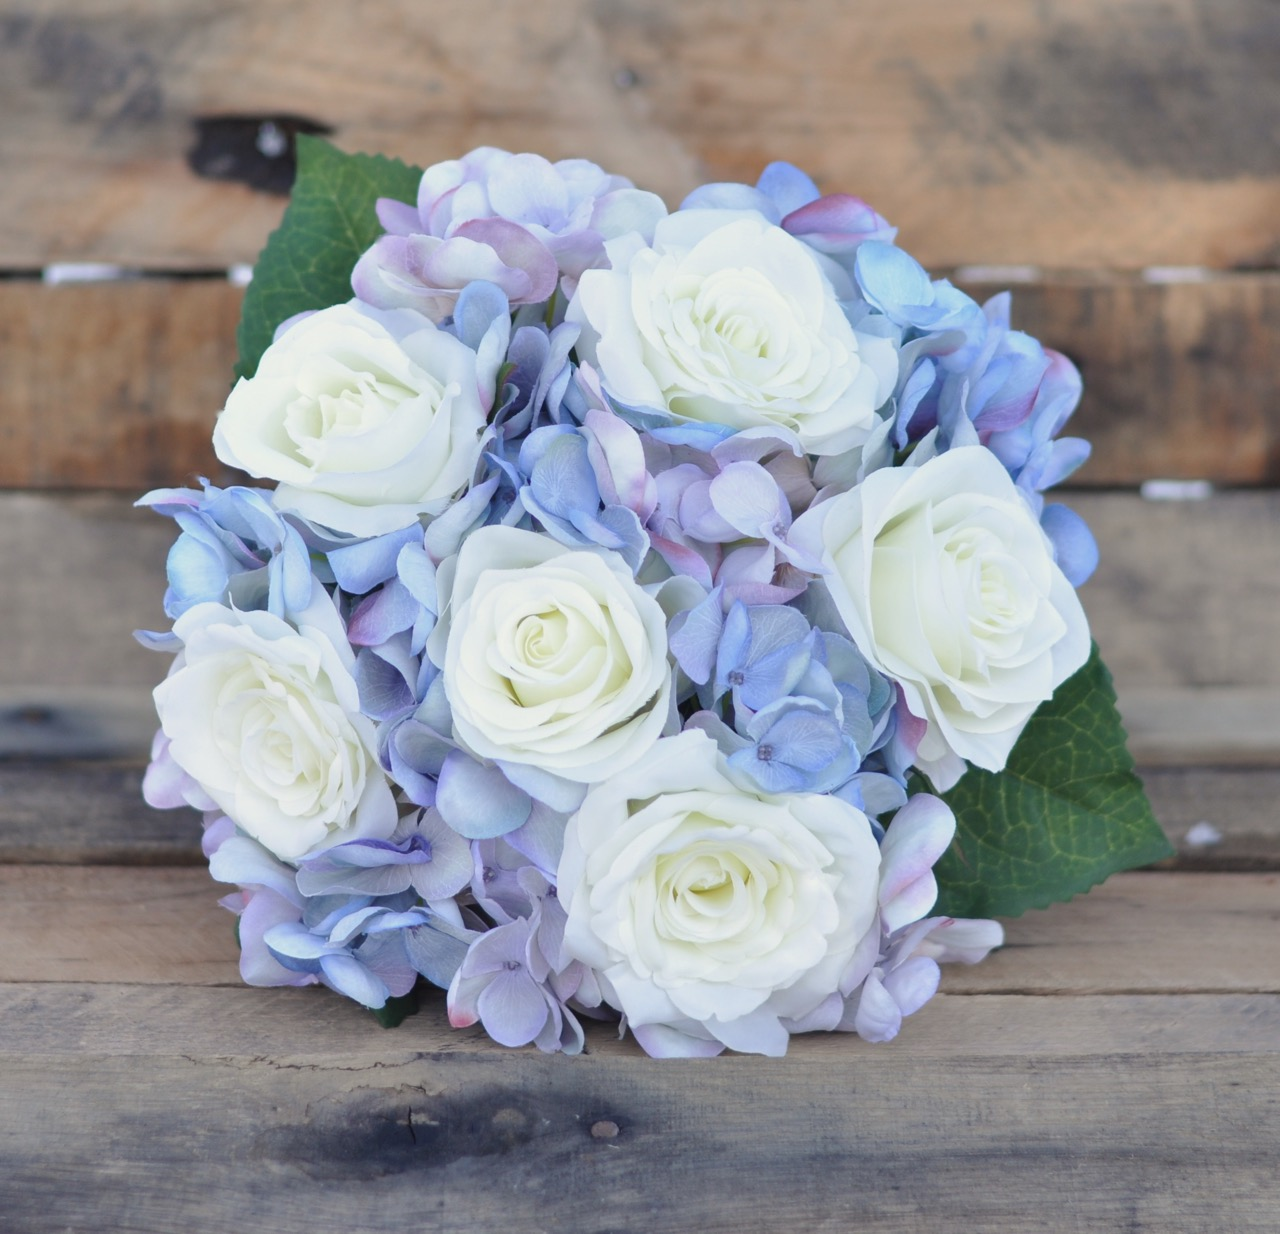 blue bouquet essay You searched for: wedding lanterns etsy is the home to thousands of handmade, vintage, and one-of-a-kind products related to your search no matter what you're looking for or where you are in the world, our global marketplace of sellers can help you find unique and affordable options.